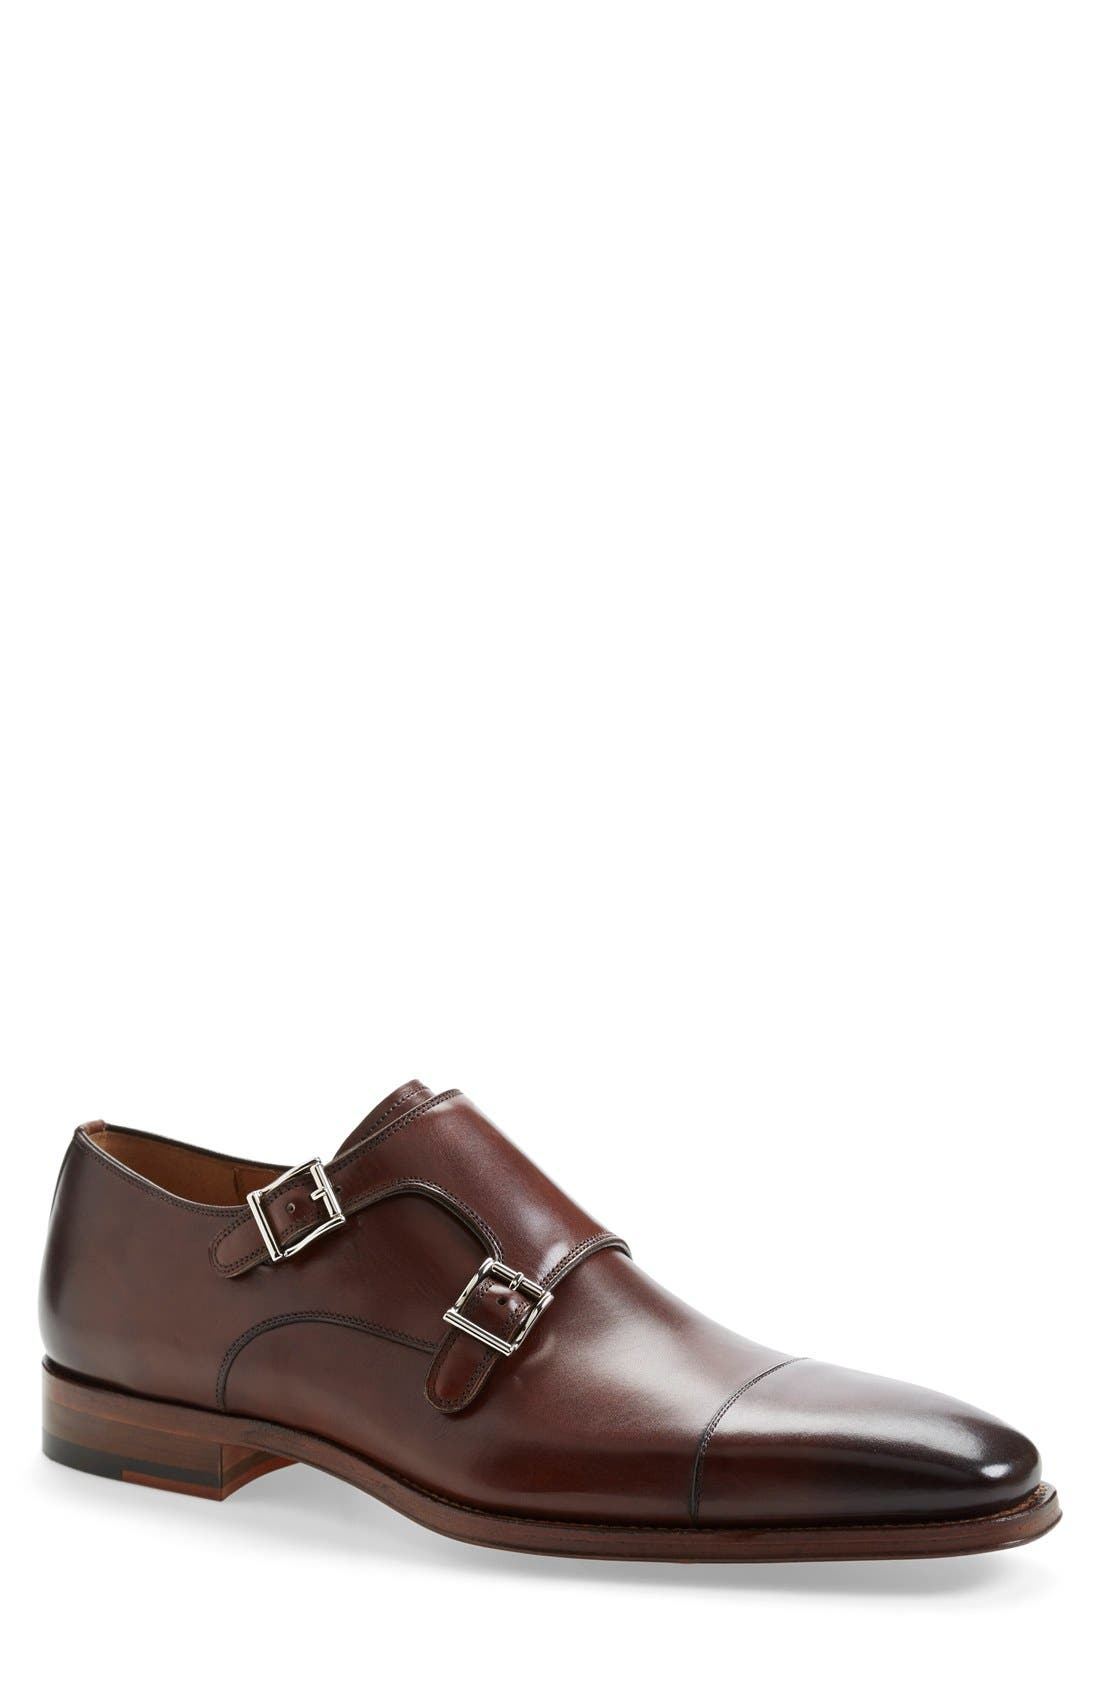 Magnanni 'Cortillas' Double Monk Strap Leather Shoe (Men)